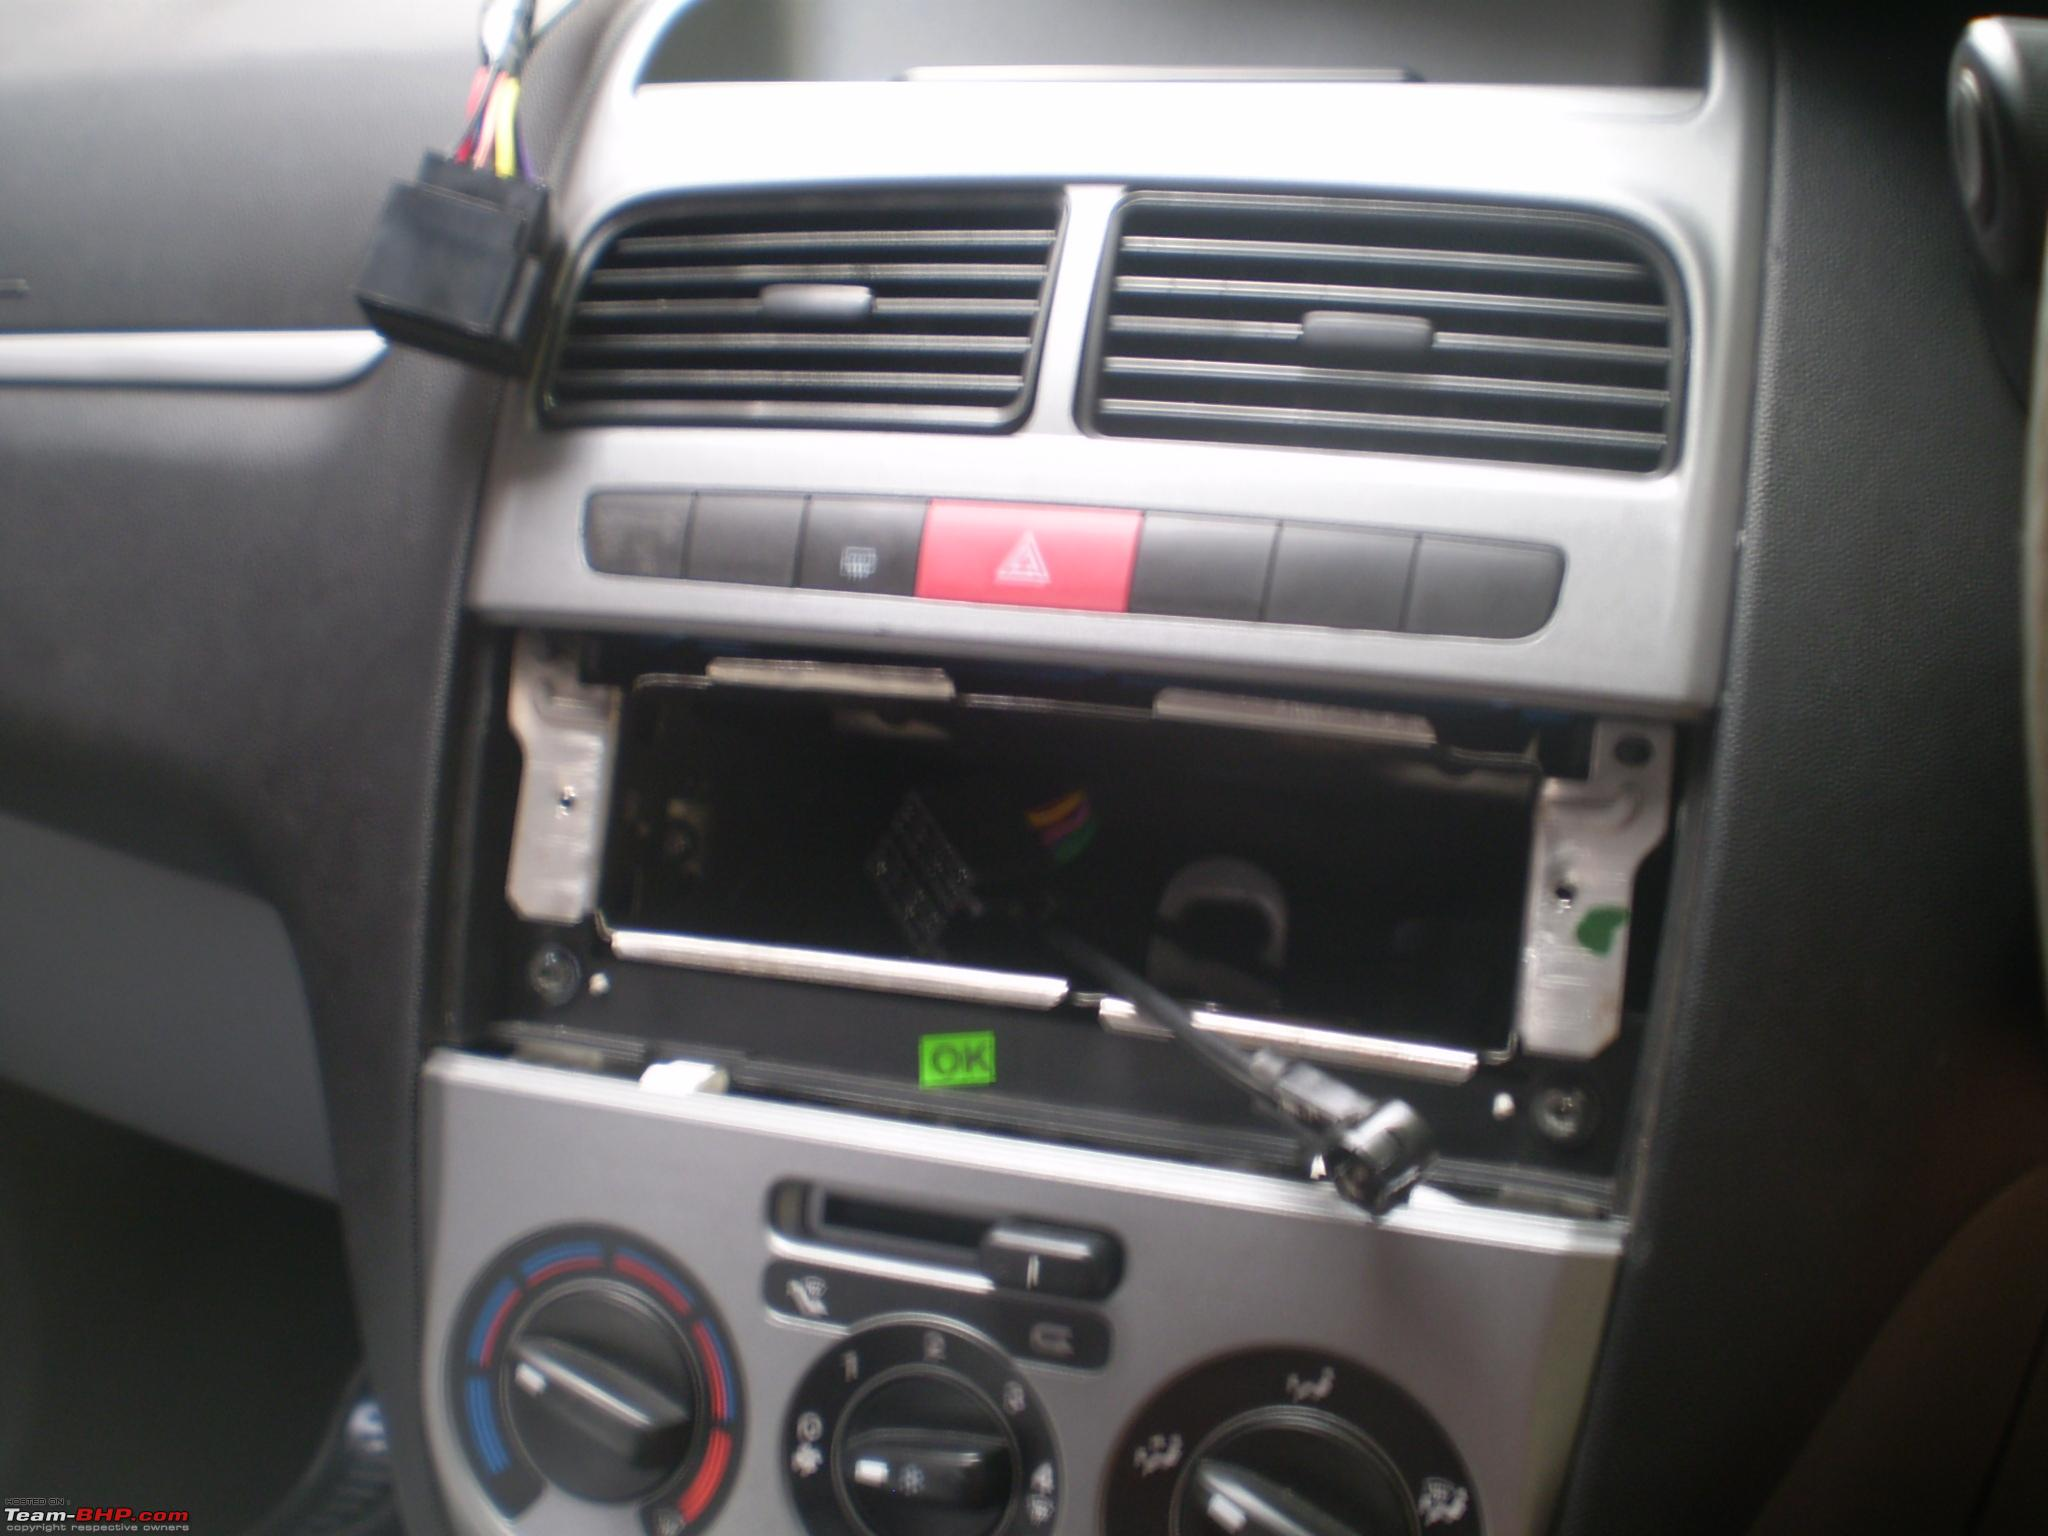 Pics Details Upgraded My Punto Headunit Team Bhp Fiat Grande Fuse Box Cover P3120187